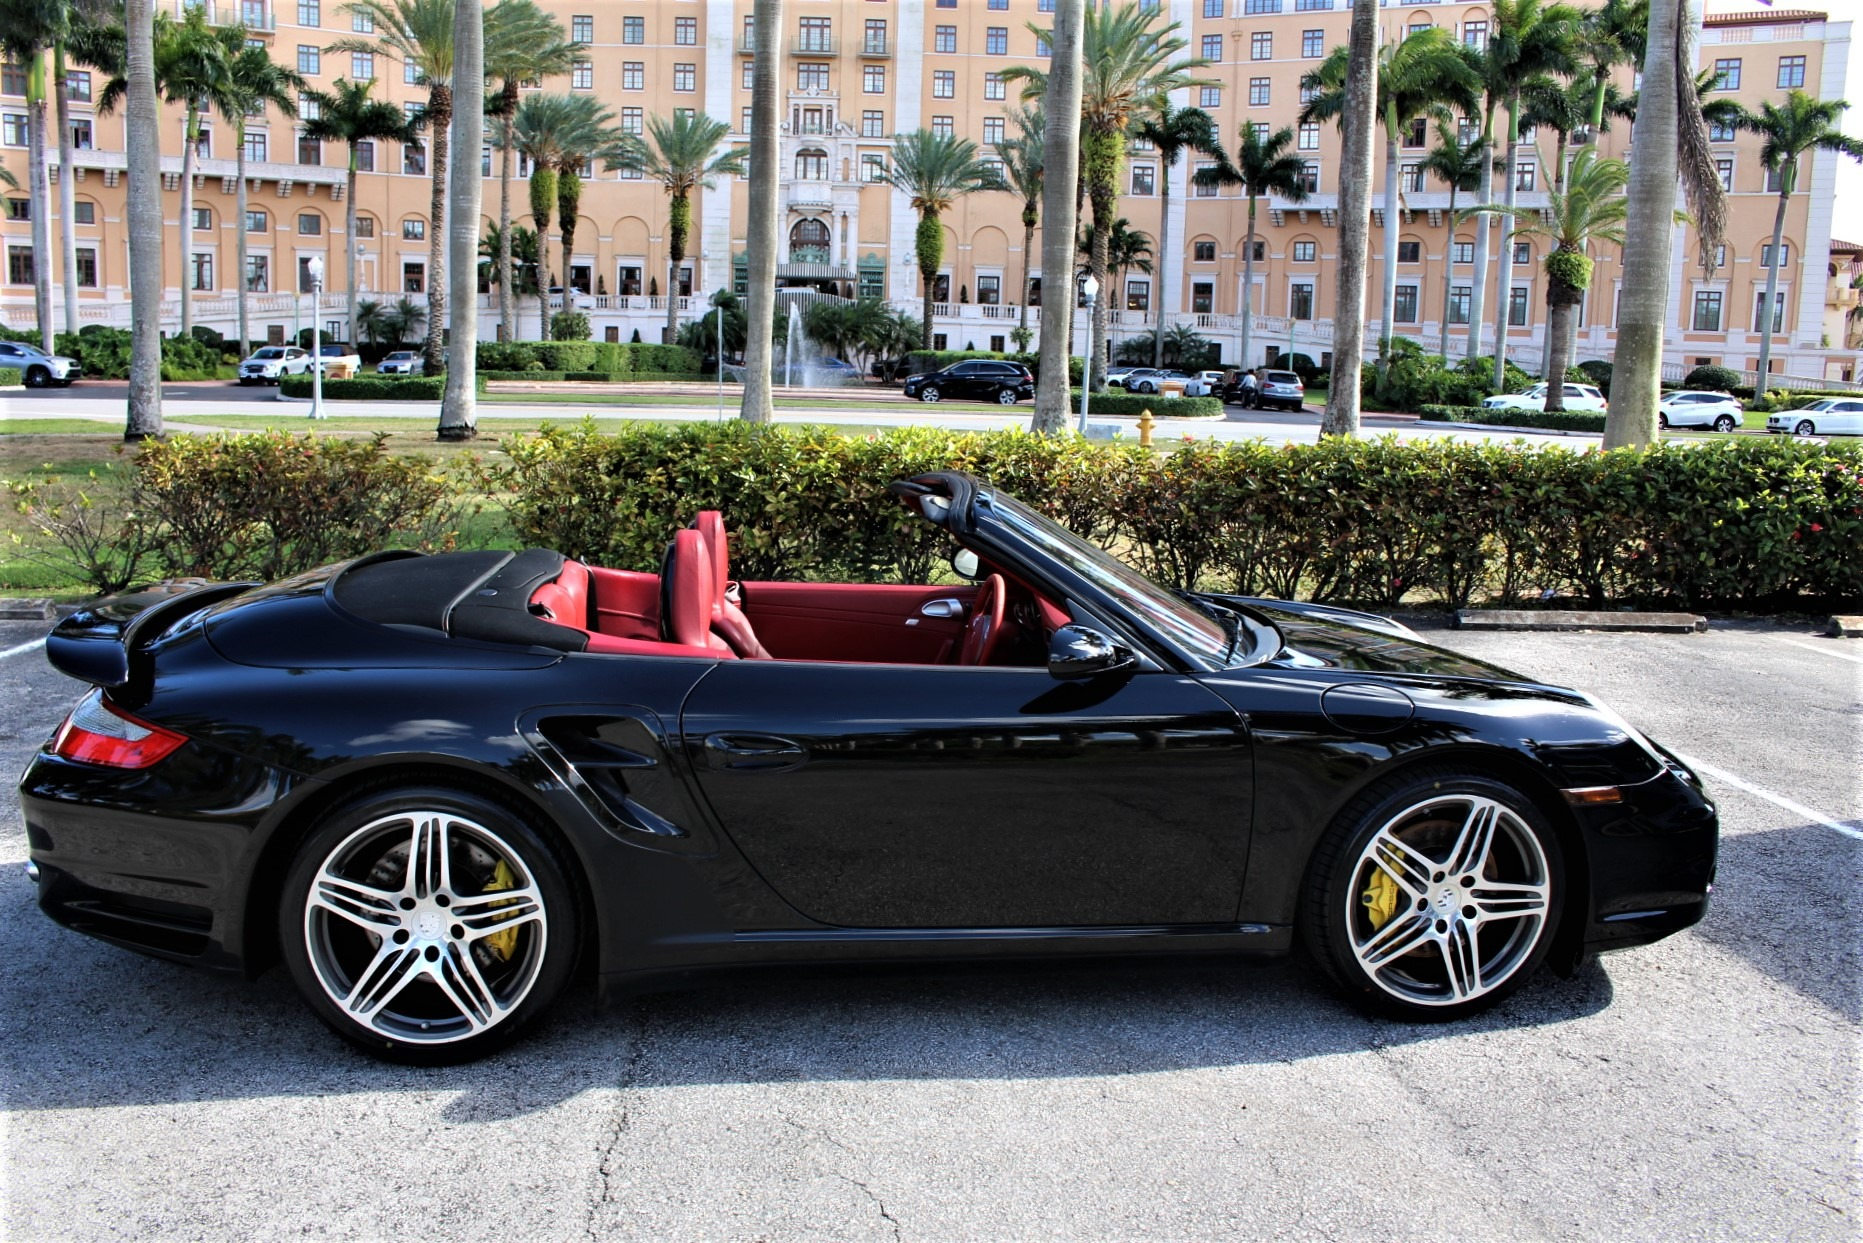 Used 2008 Porsche 911 Turbo for sale Sold at The Gables Sports Cars in Miami FL 33146 1